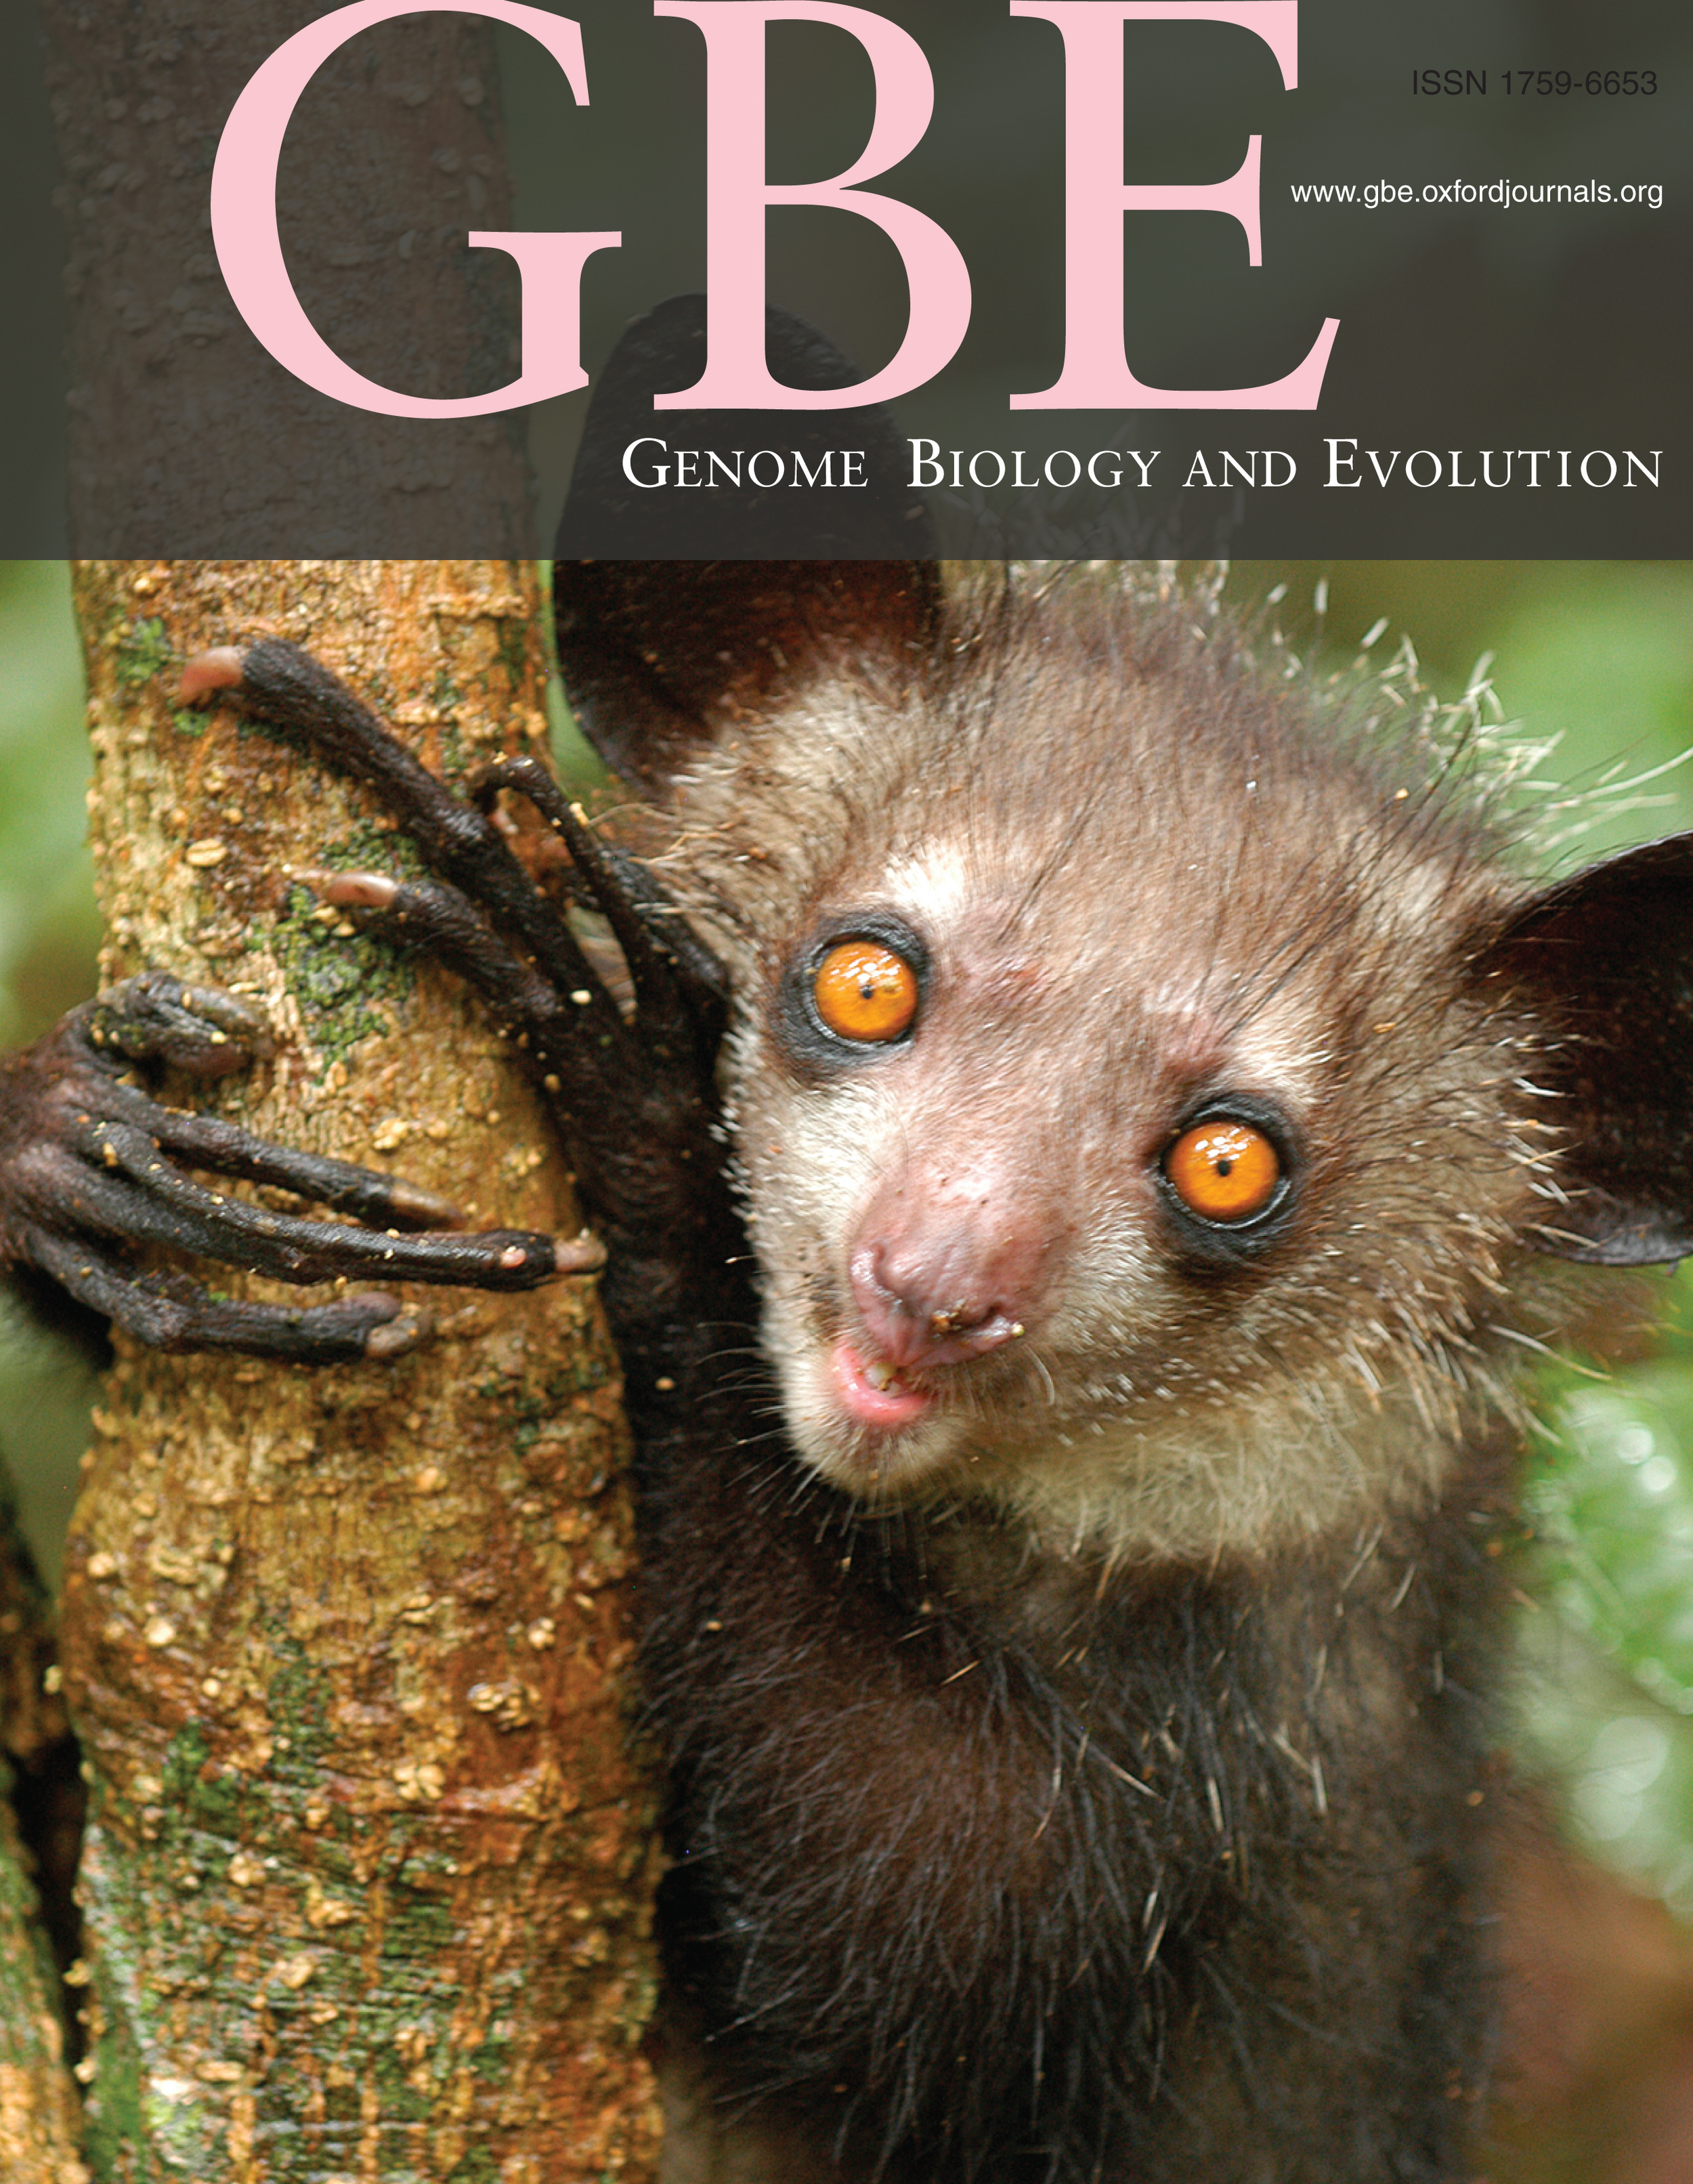 Genome Biology and Evolution  cover for  Perry et al. 2012 . Cover photo by Edward Louis.